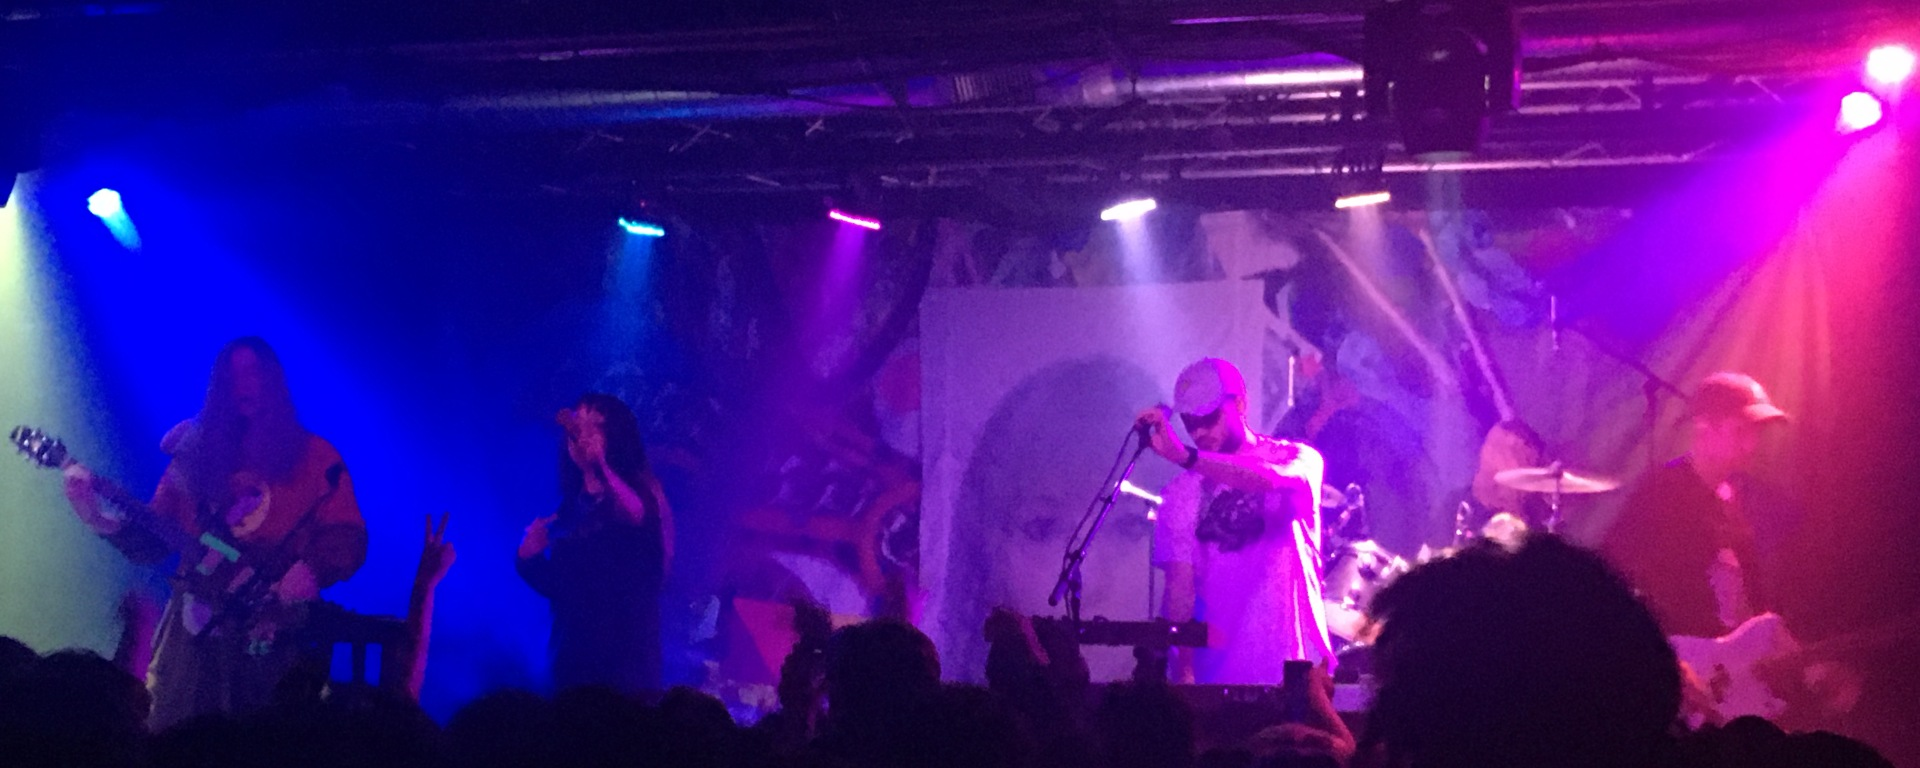 Vocalist of Kero Kero Bonito sings to the crowd, with the guitarist on the left and the rest of the band on the right. There are blue and purple stage lights flashing in the background